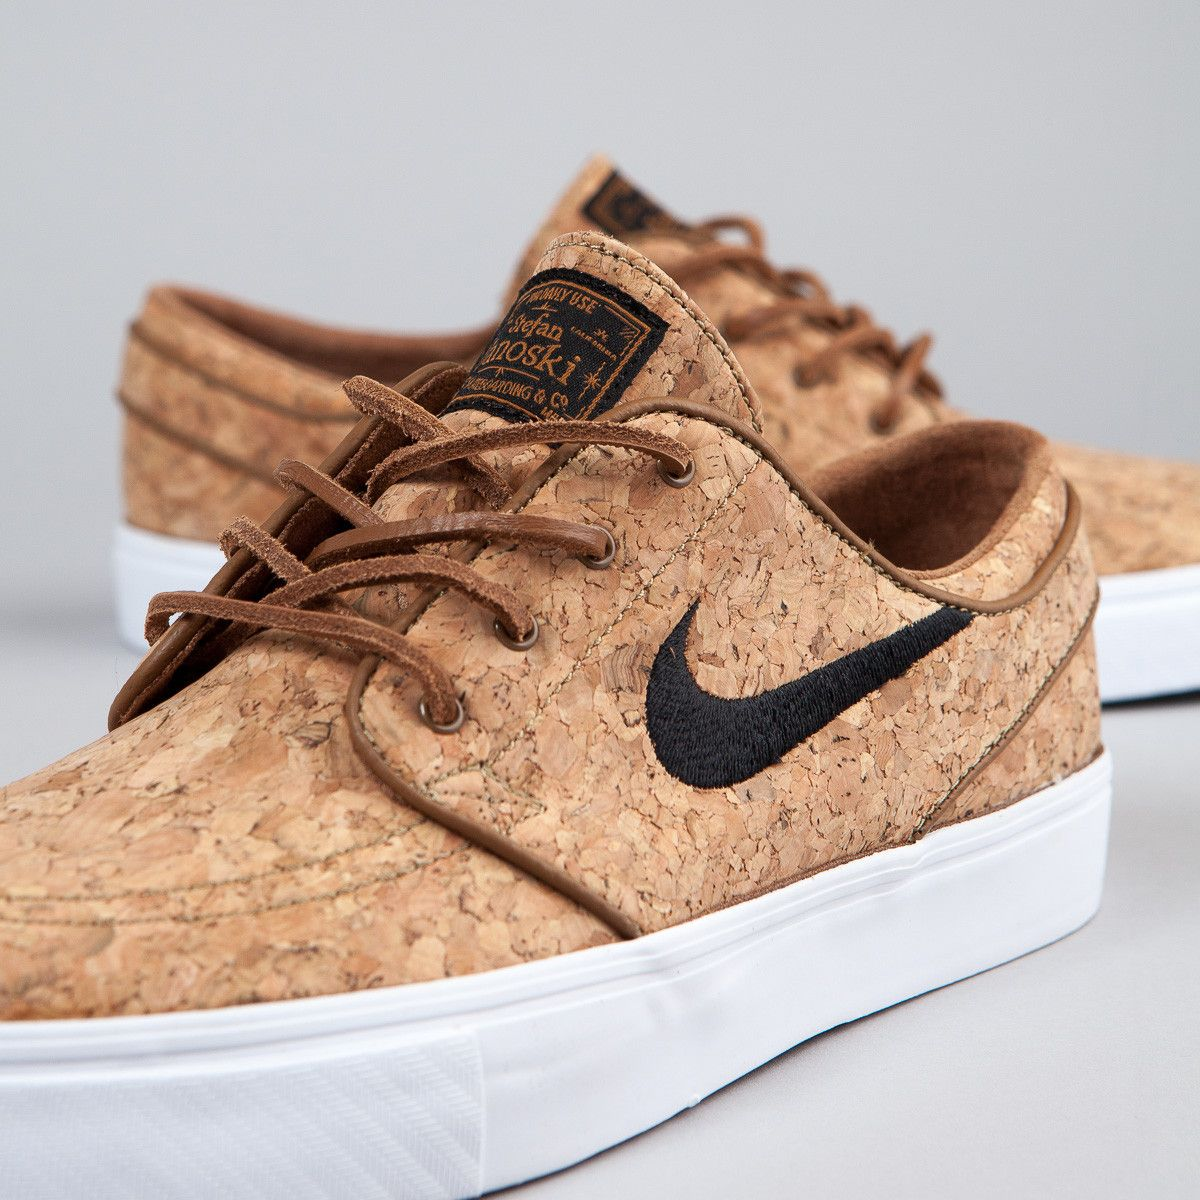 huge selection of 9a2d9 5f07c Nike SB Stefan Janoski Elite Shoes (Cork) - Ale Brown   Black   White